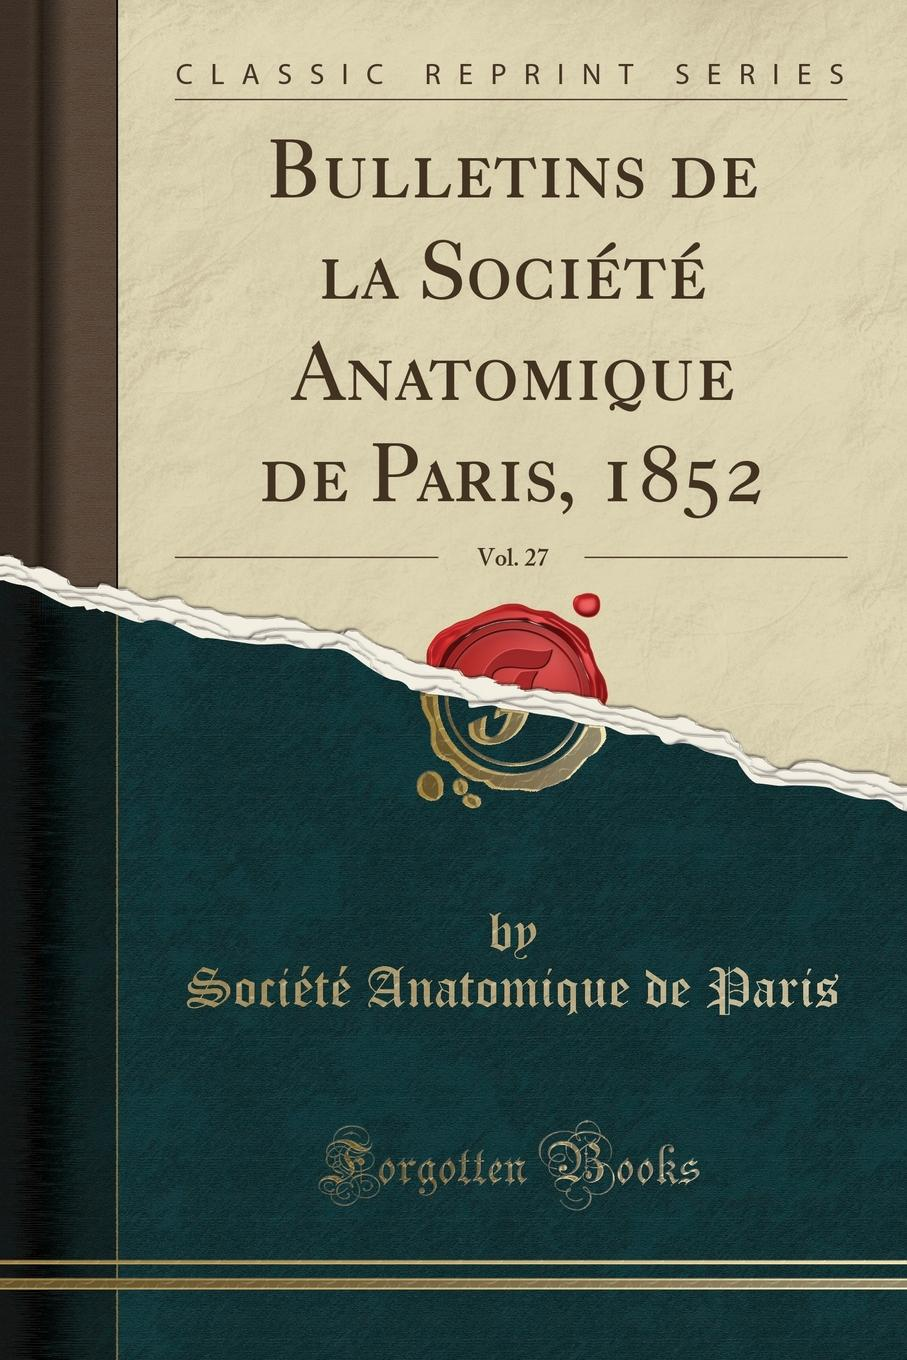 Société Anatomique de Paris Bulletins de la Societe Anatomique de Paris, 1852, Vol. 27 (Classic Reprint)